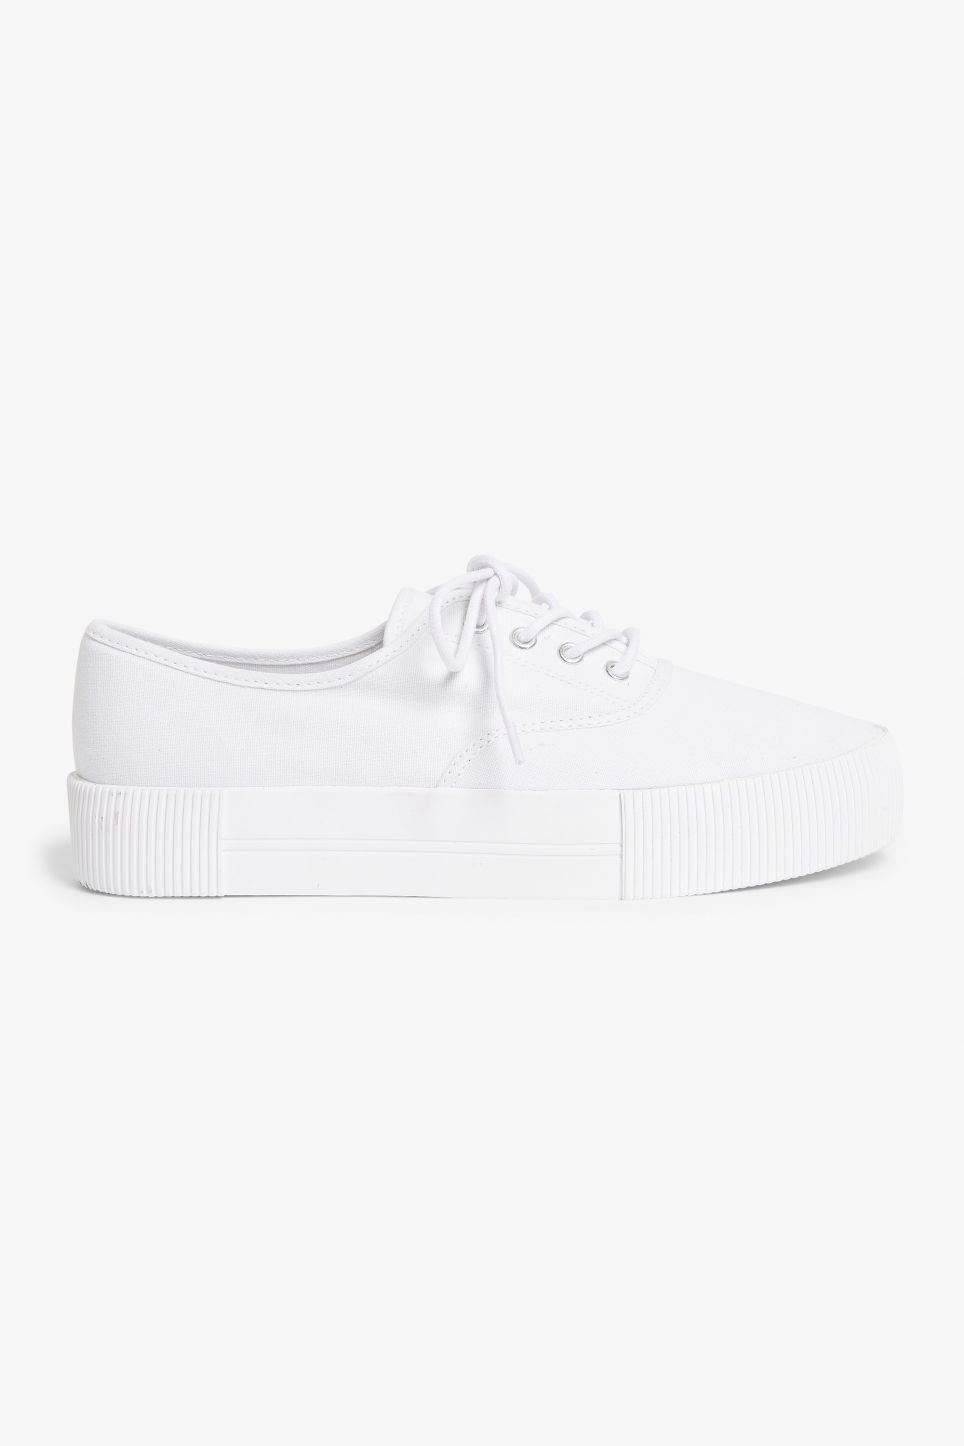 Detailed image of Monki platform sneakers in white